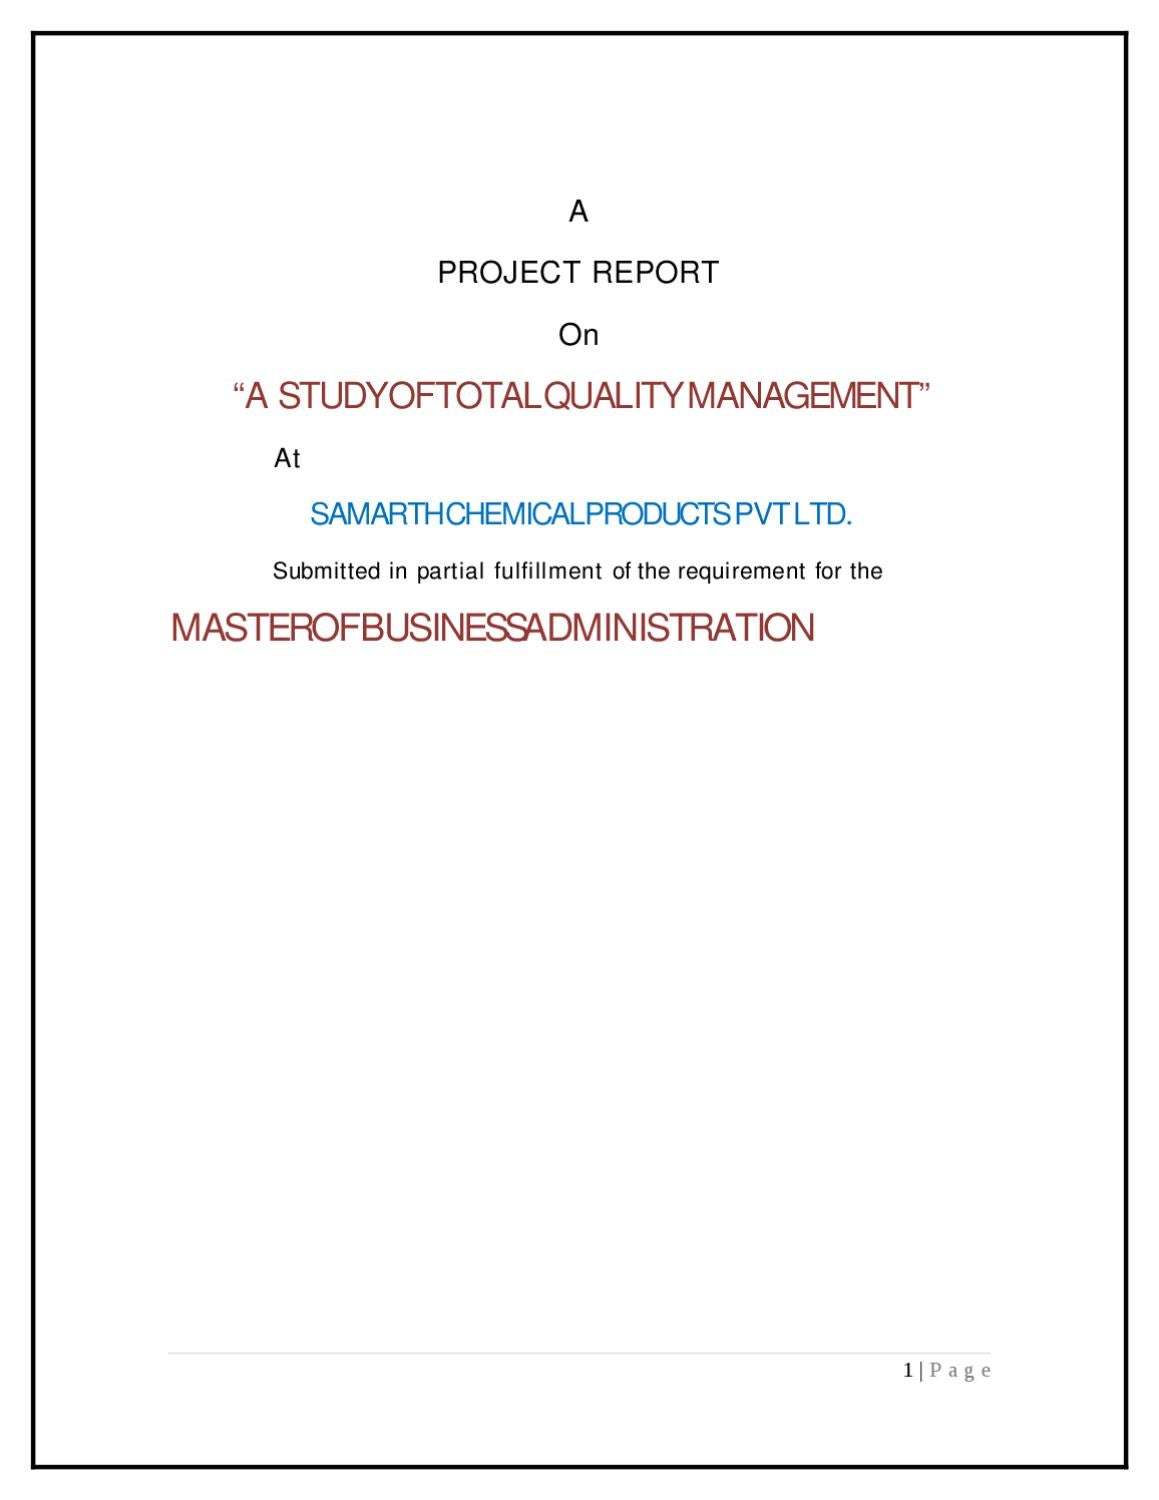 a project report on a study of total quality management at samarth a project report on a study of total quality management at samarth chemical products pvt by sanjay gupta issuu